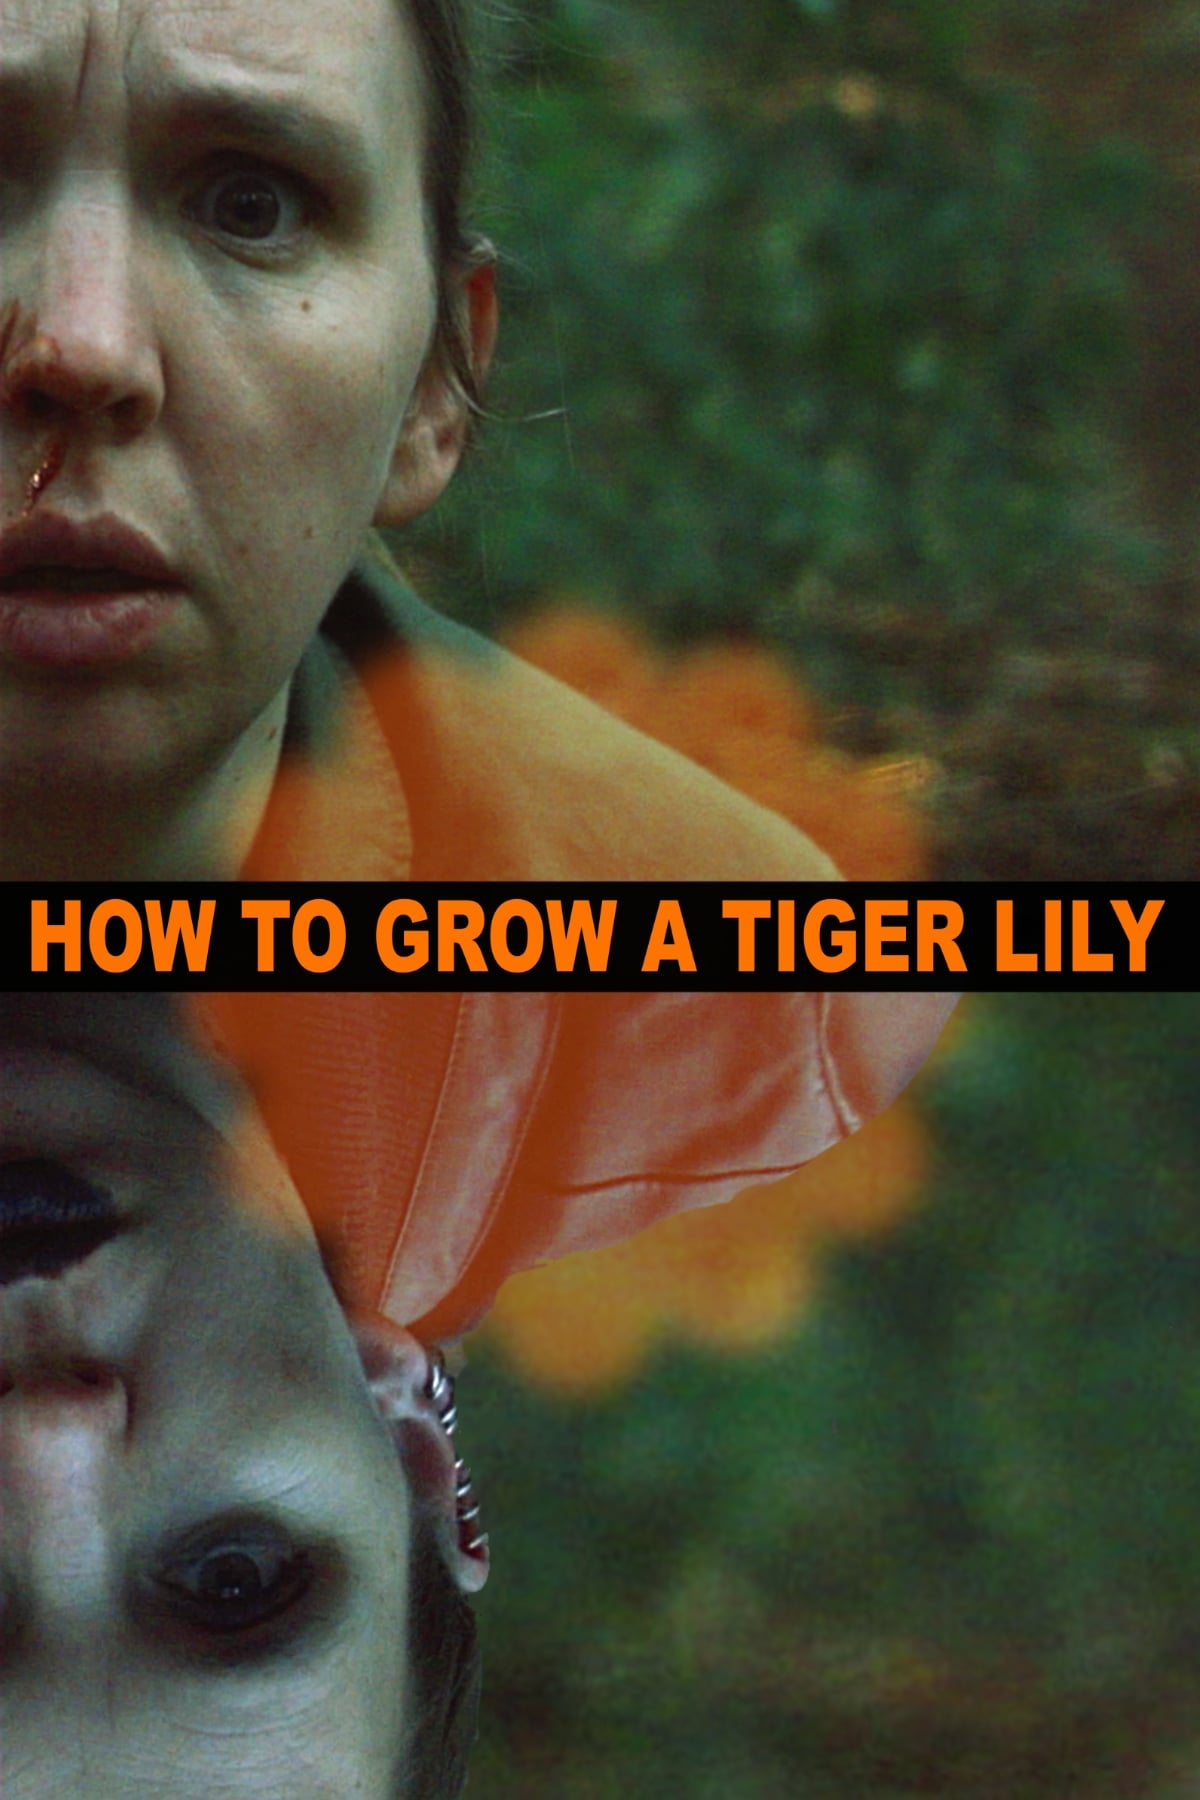 How to Grow a Tiger Lily on FREECABLE TV